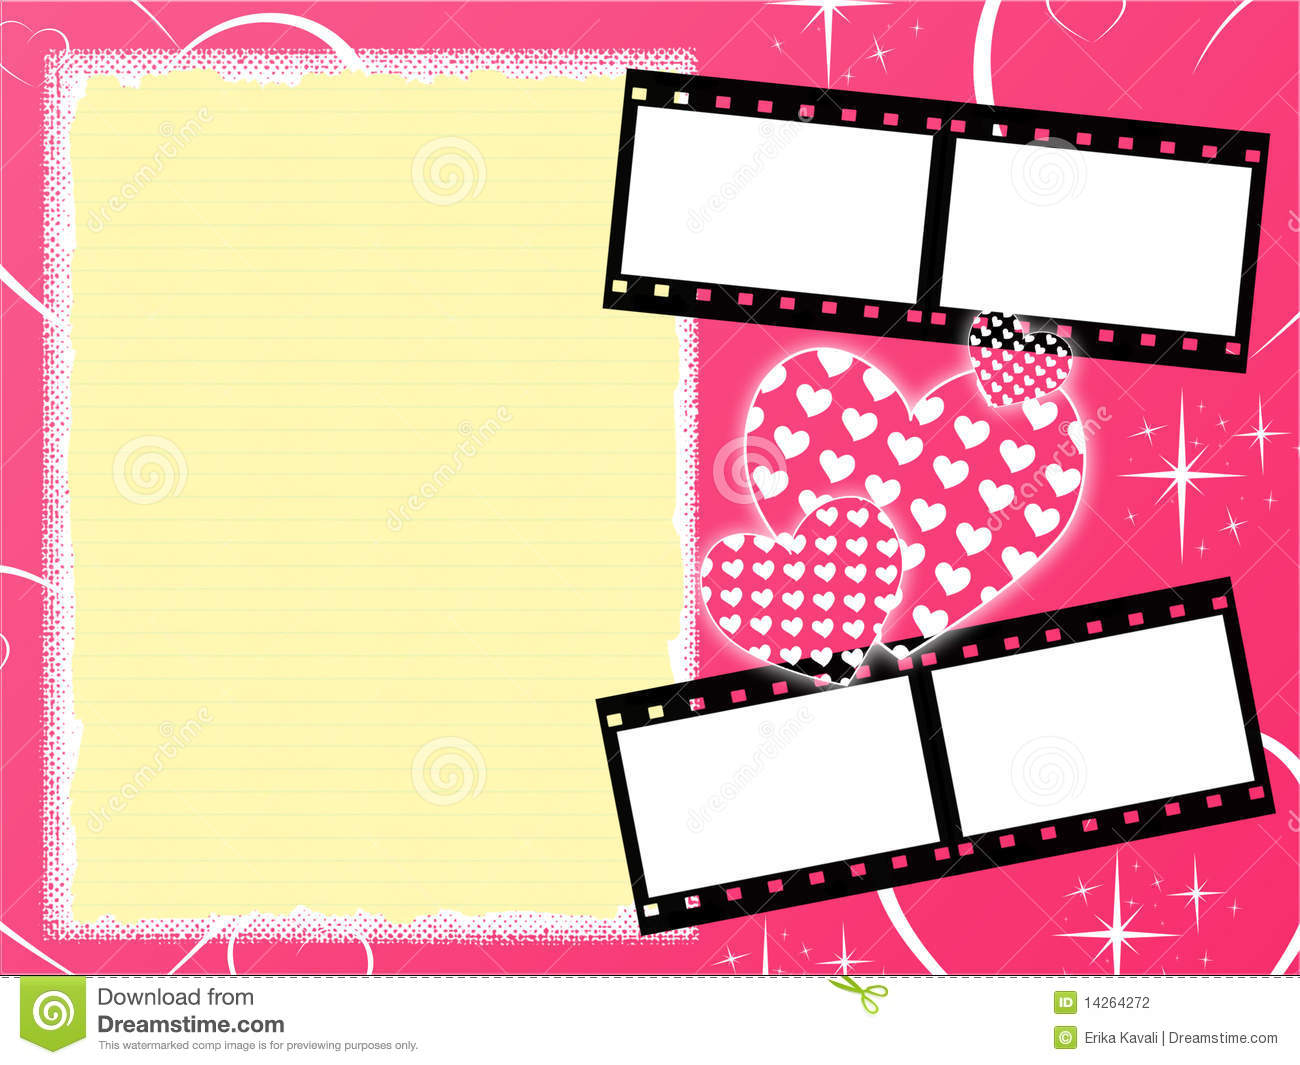 Girly Background Royalty Free Stock Photo: Pink Girly Background Stock Illustration. Illustration Of